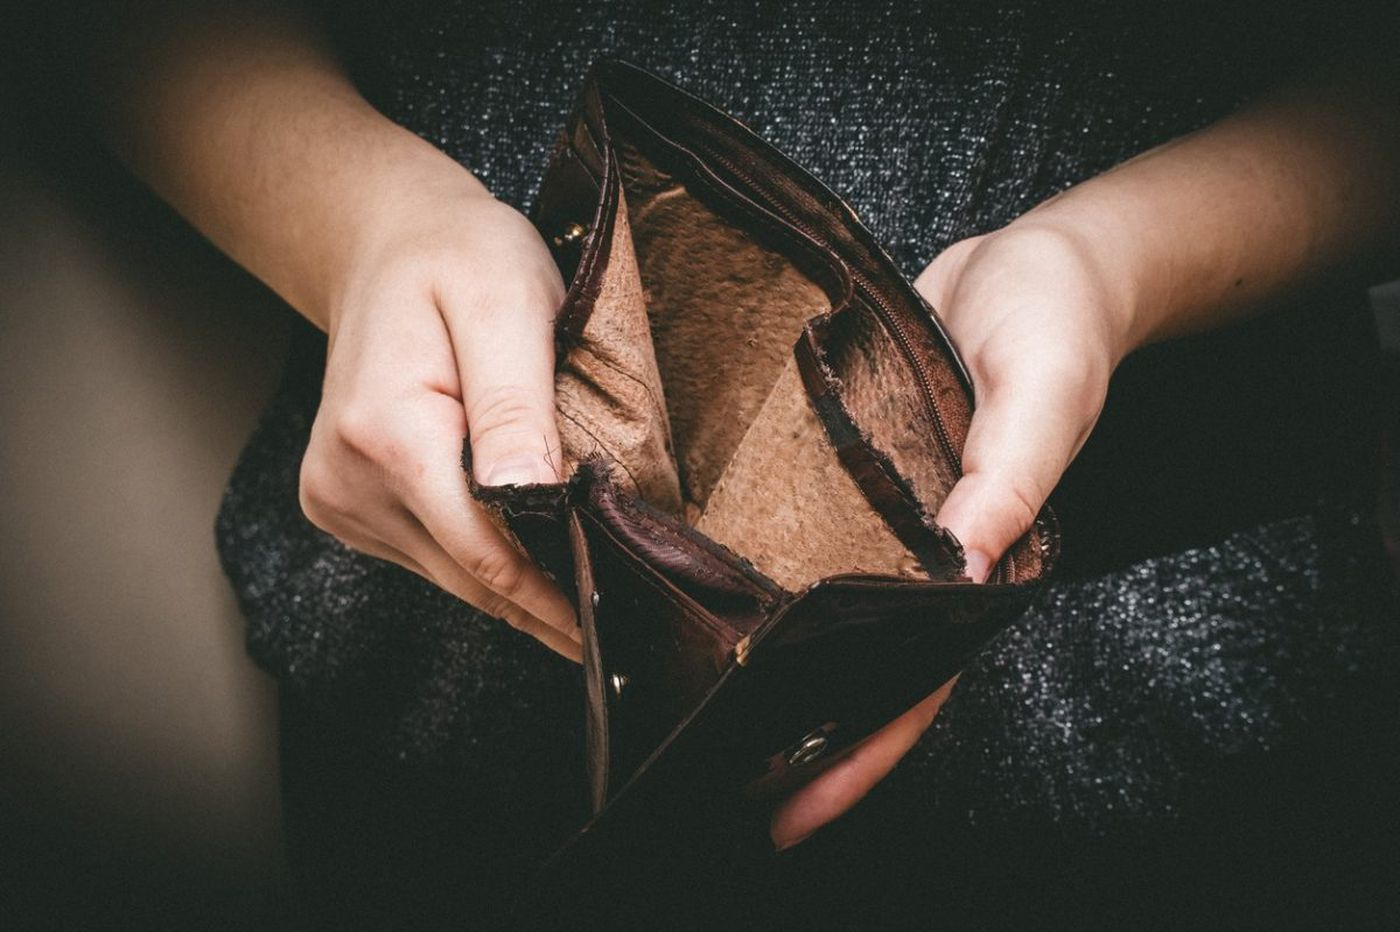 Nearly 40 percent of Americans would struggle to pay a $400 surprise expense, Fed survey says